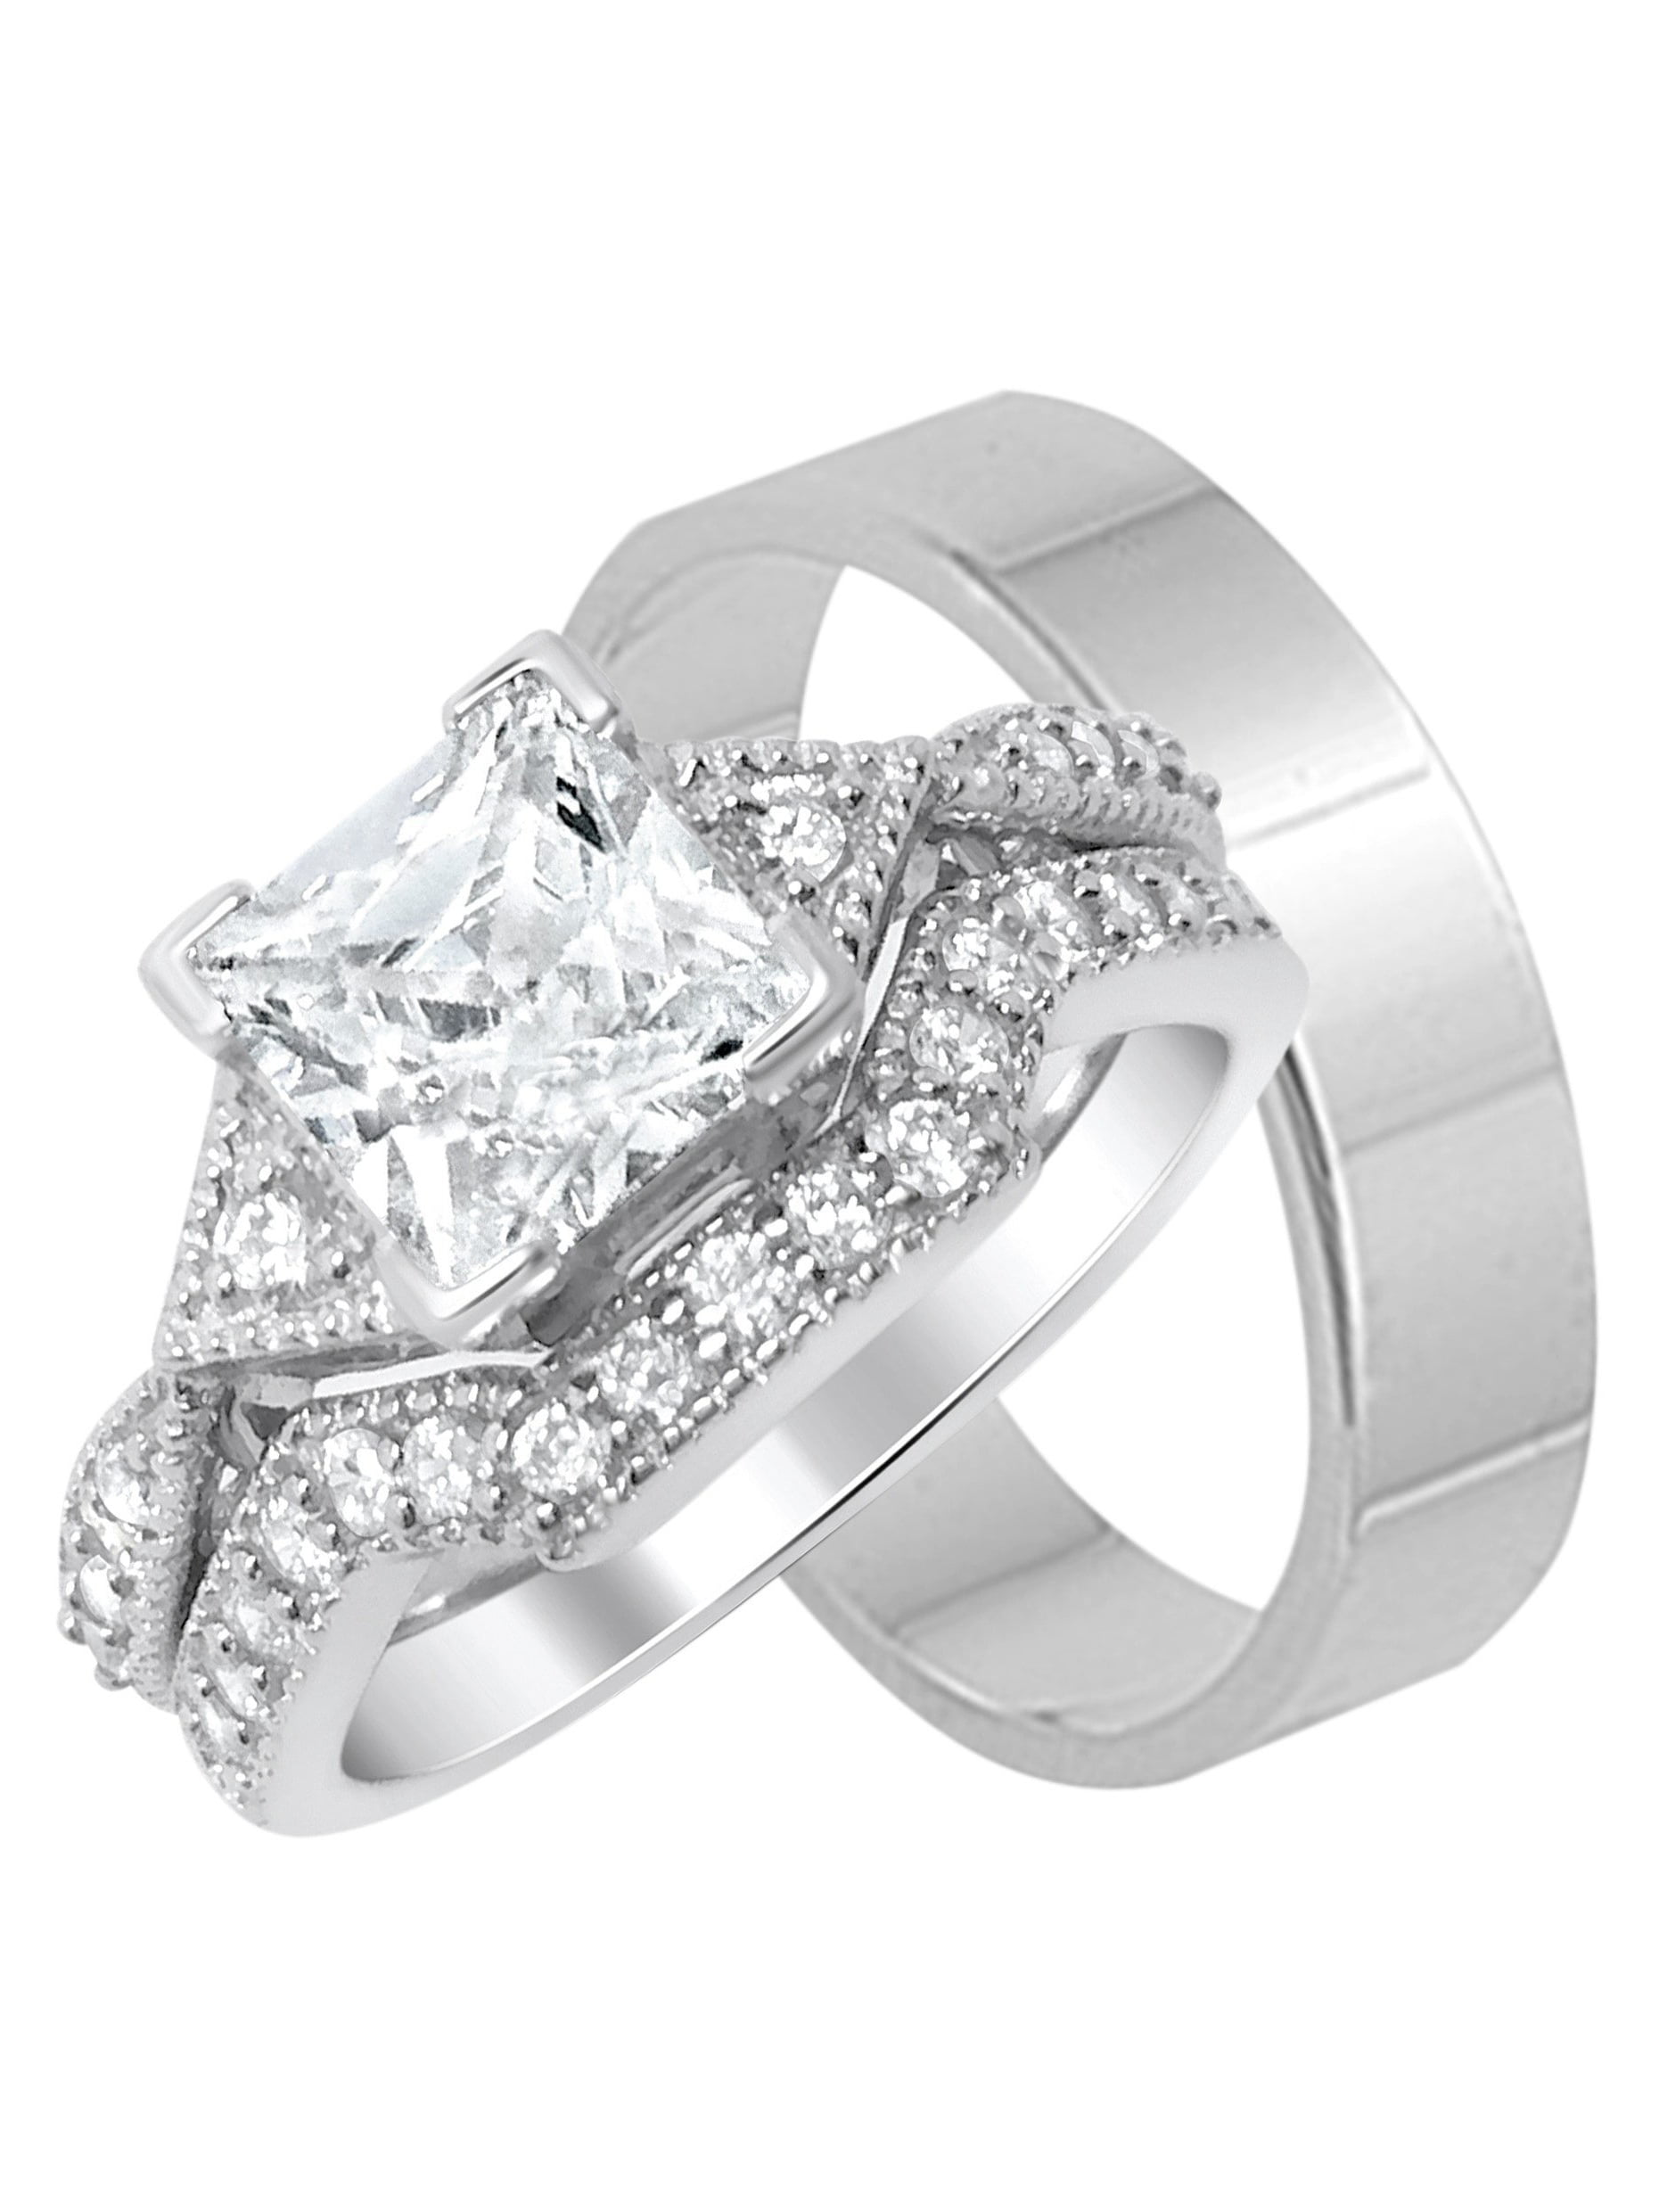 Laraso Co His Hers Silver Matching Wedding Bands Ring Sets For